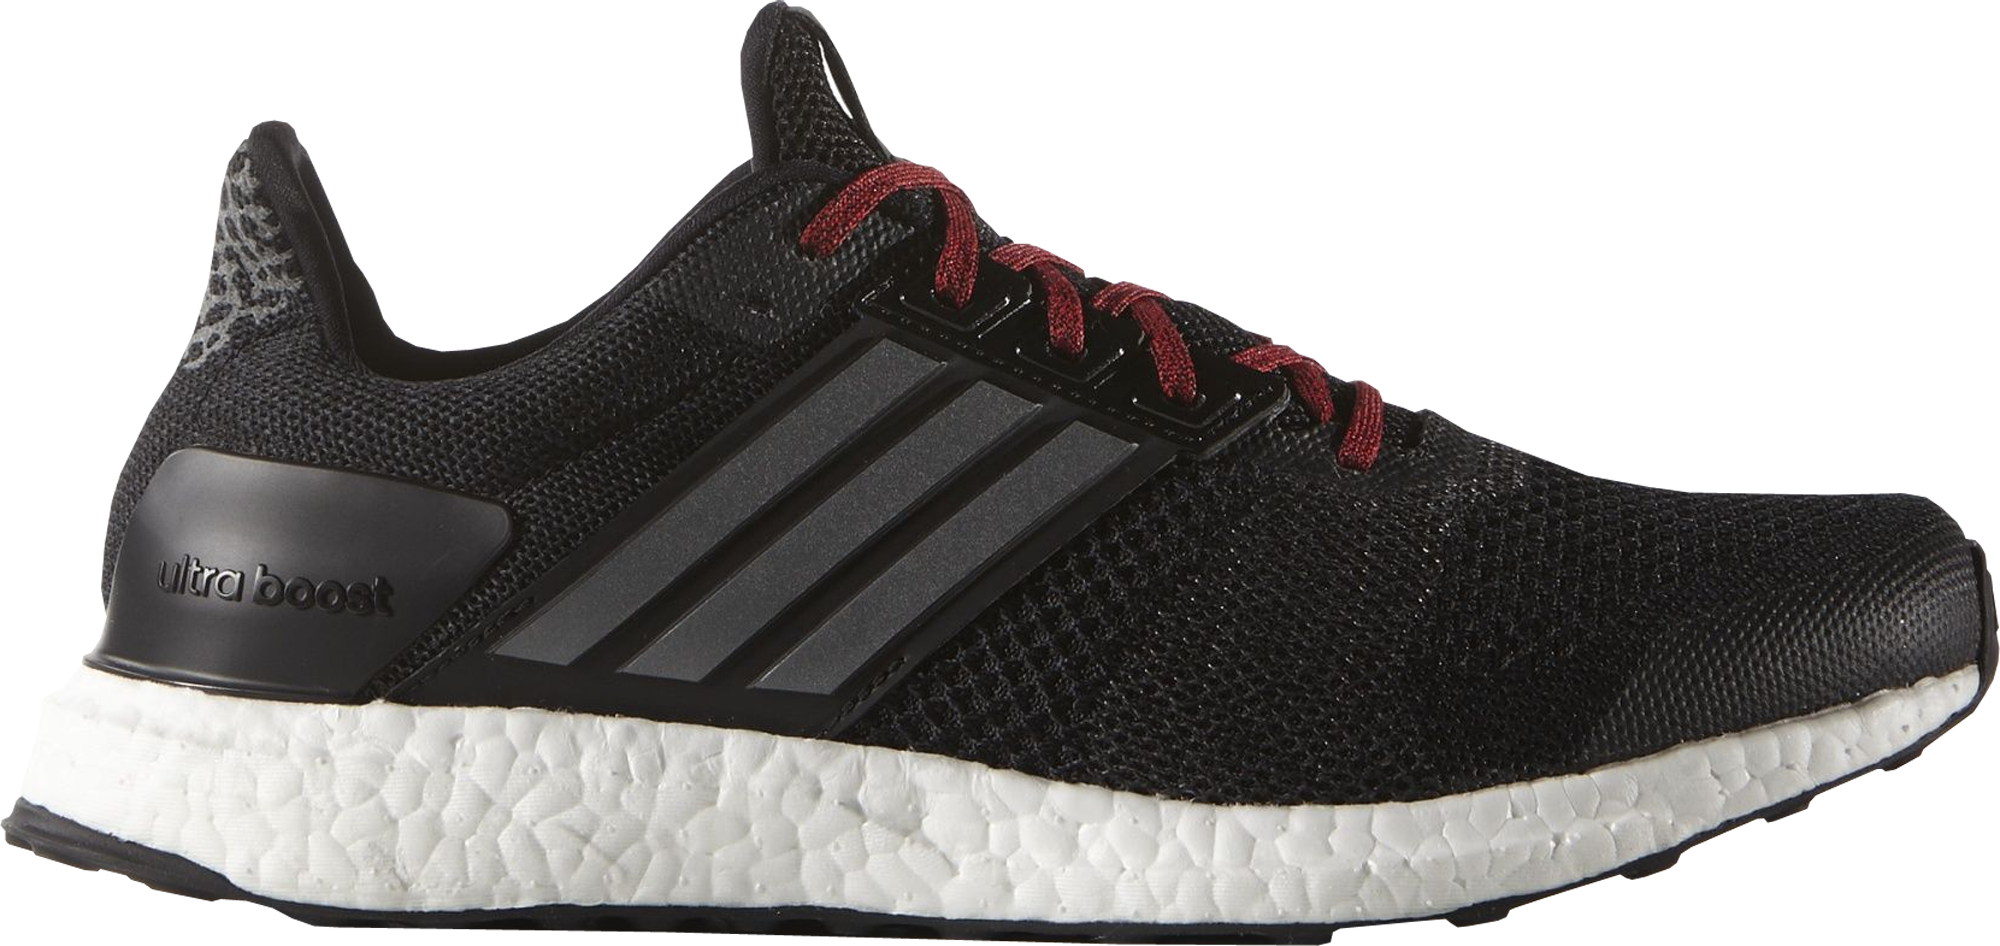 a8069fb7c7c3 ... discount code for adidas ultra boost st core black bd7bf c75c4